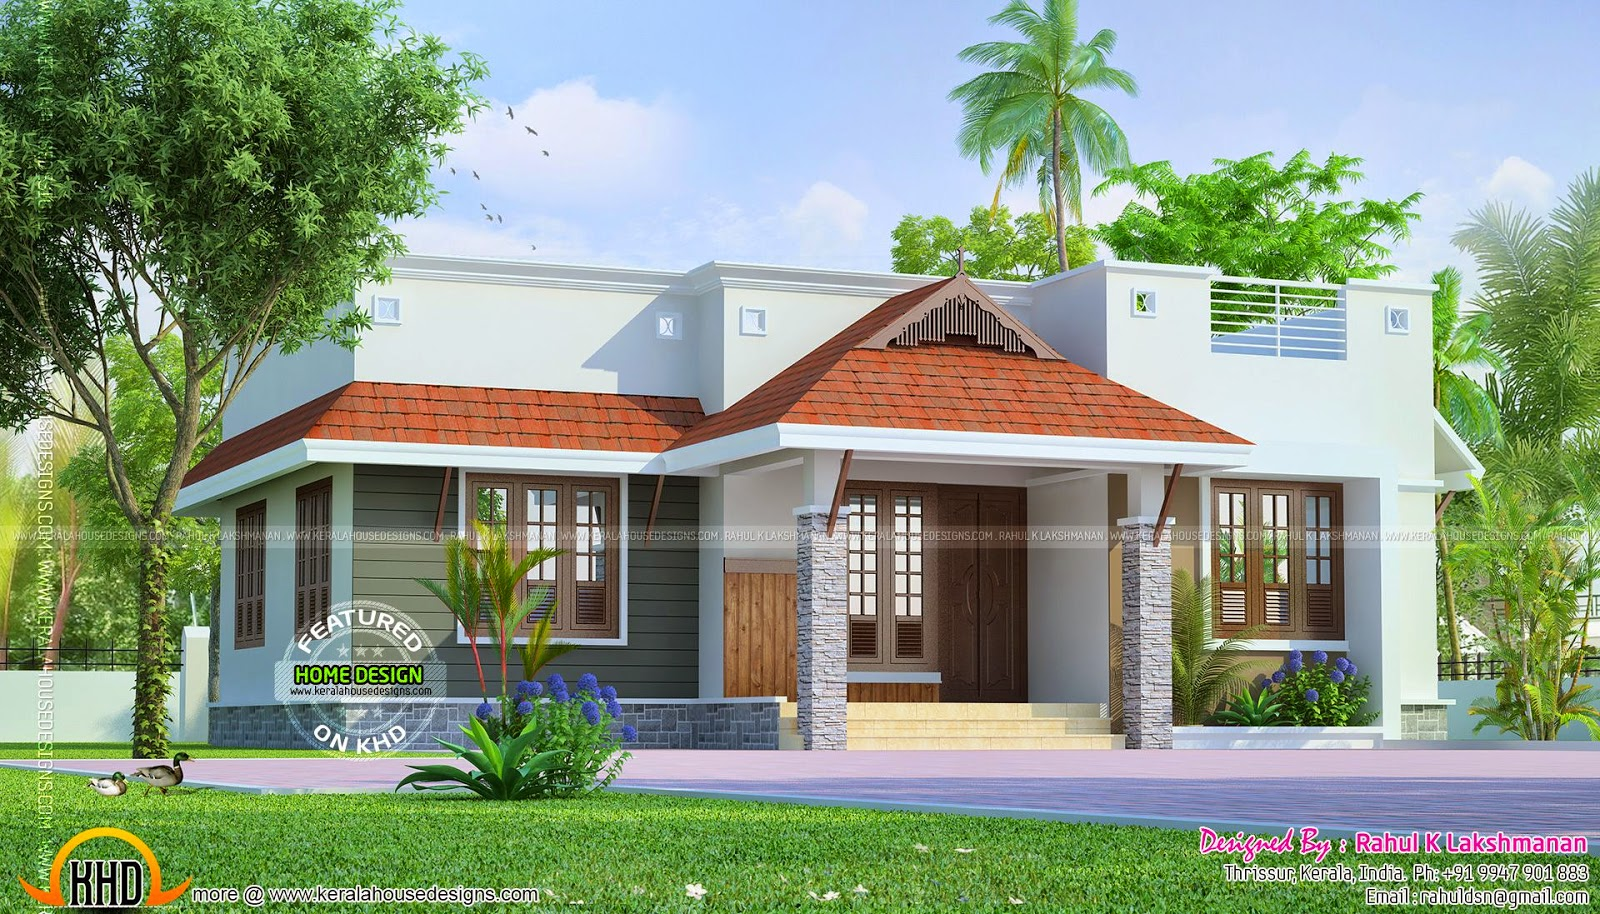 Dream home for common man kerala home design and floor plans for Dream home design